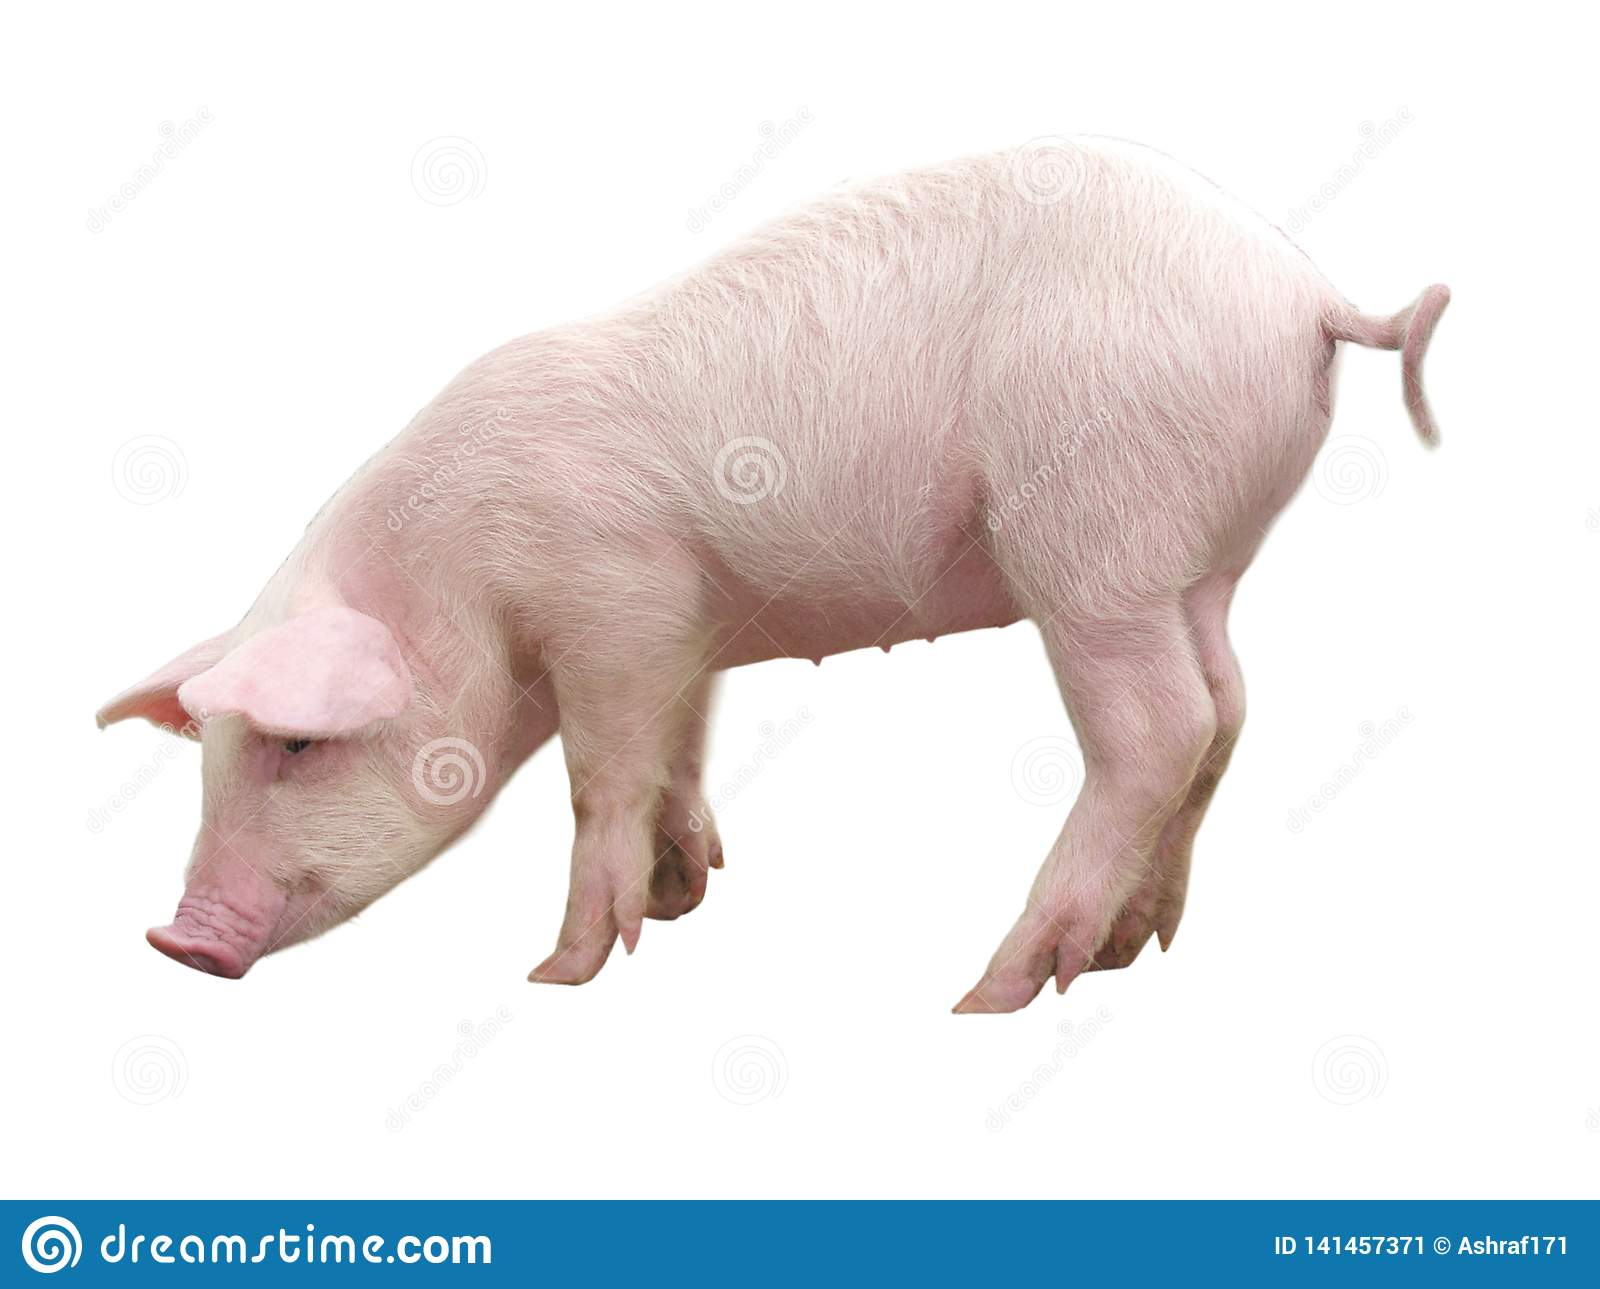 Farm Animals - Pig who is represented on a white background - Image